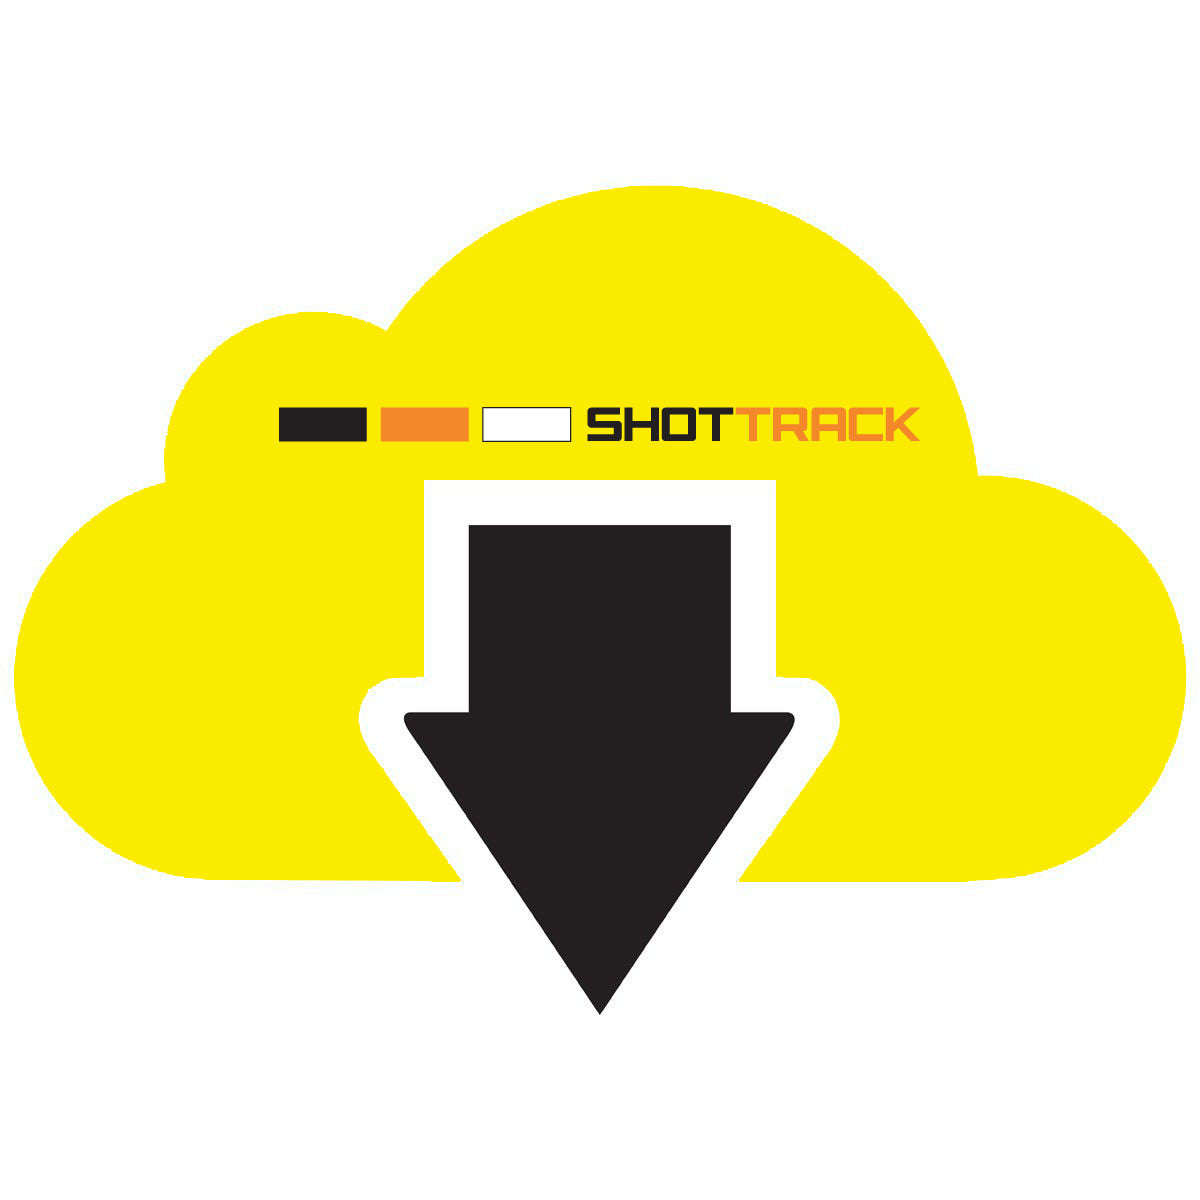 ShotTrack VoD 305 – Bluetooth Set-up Guide - Feb 2020